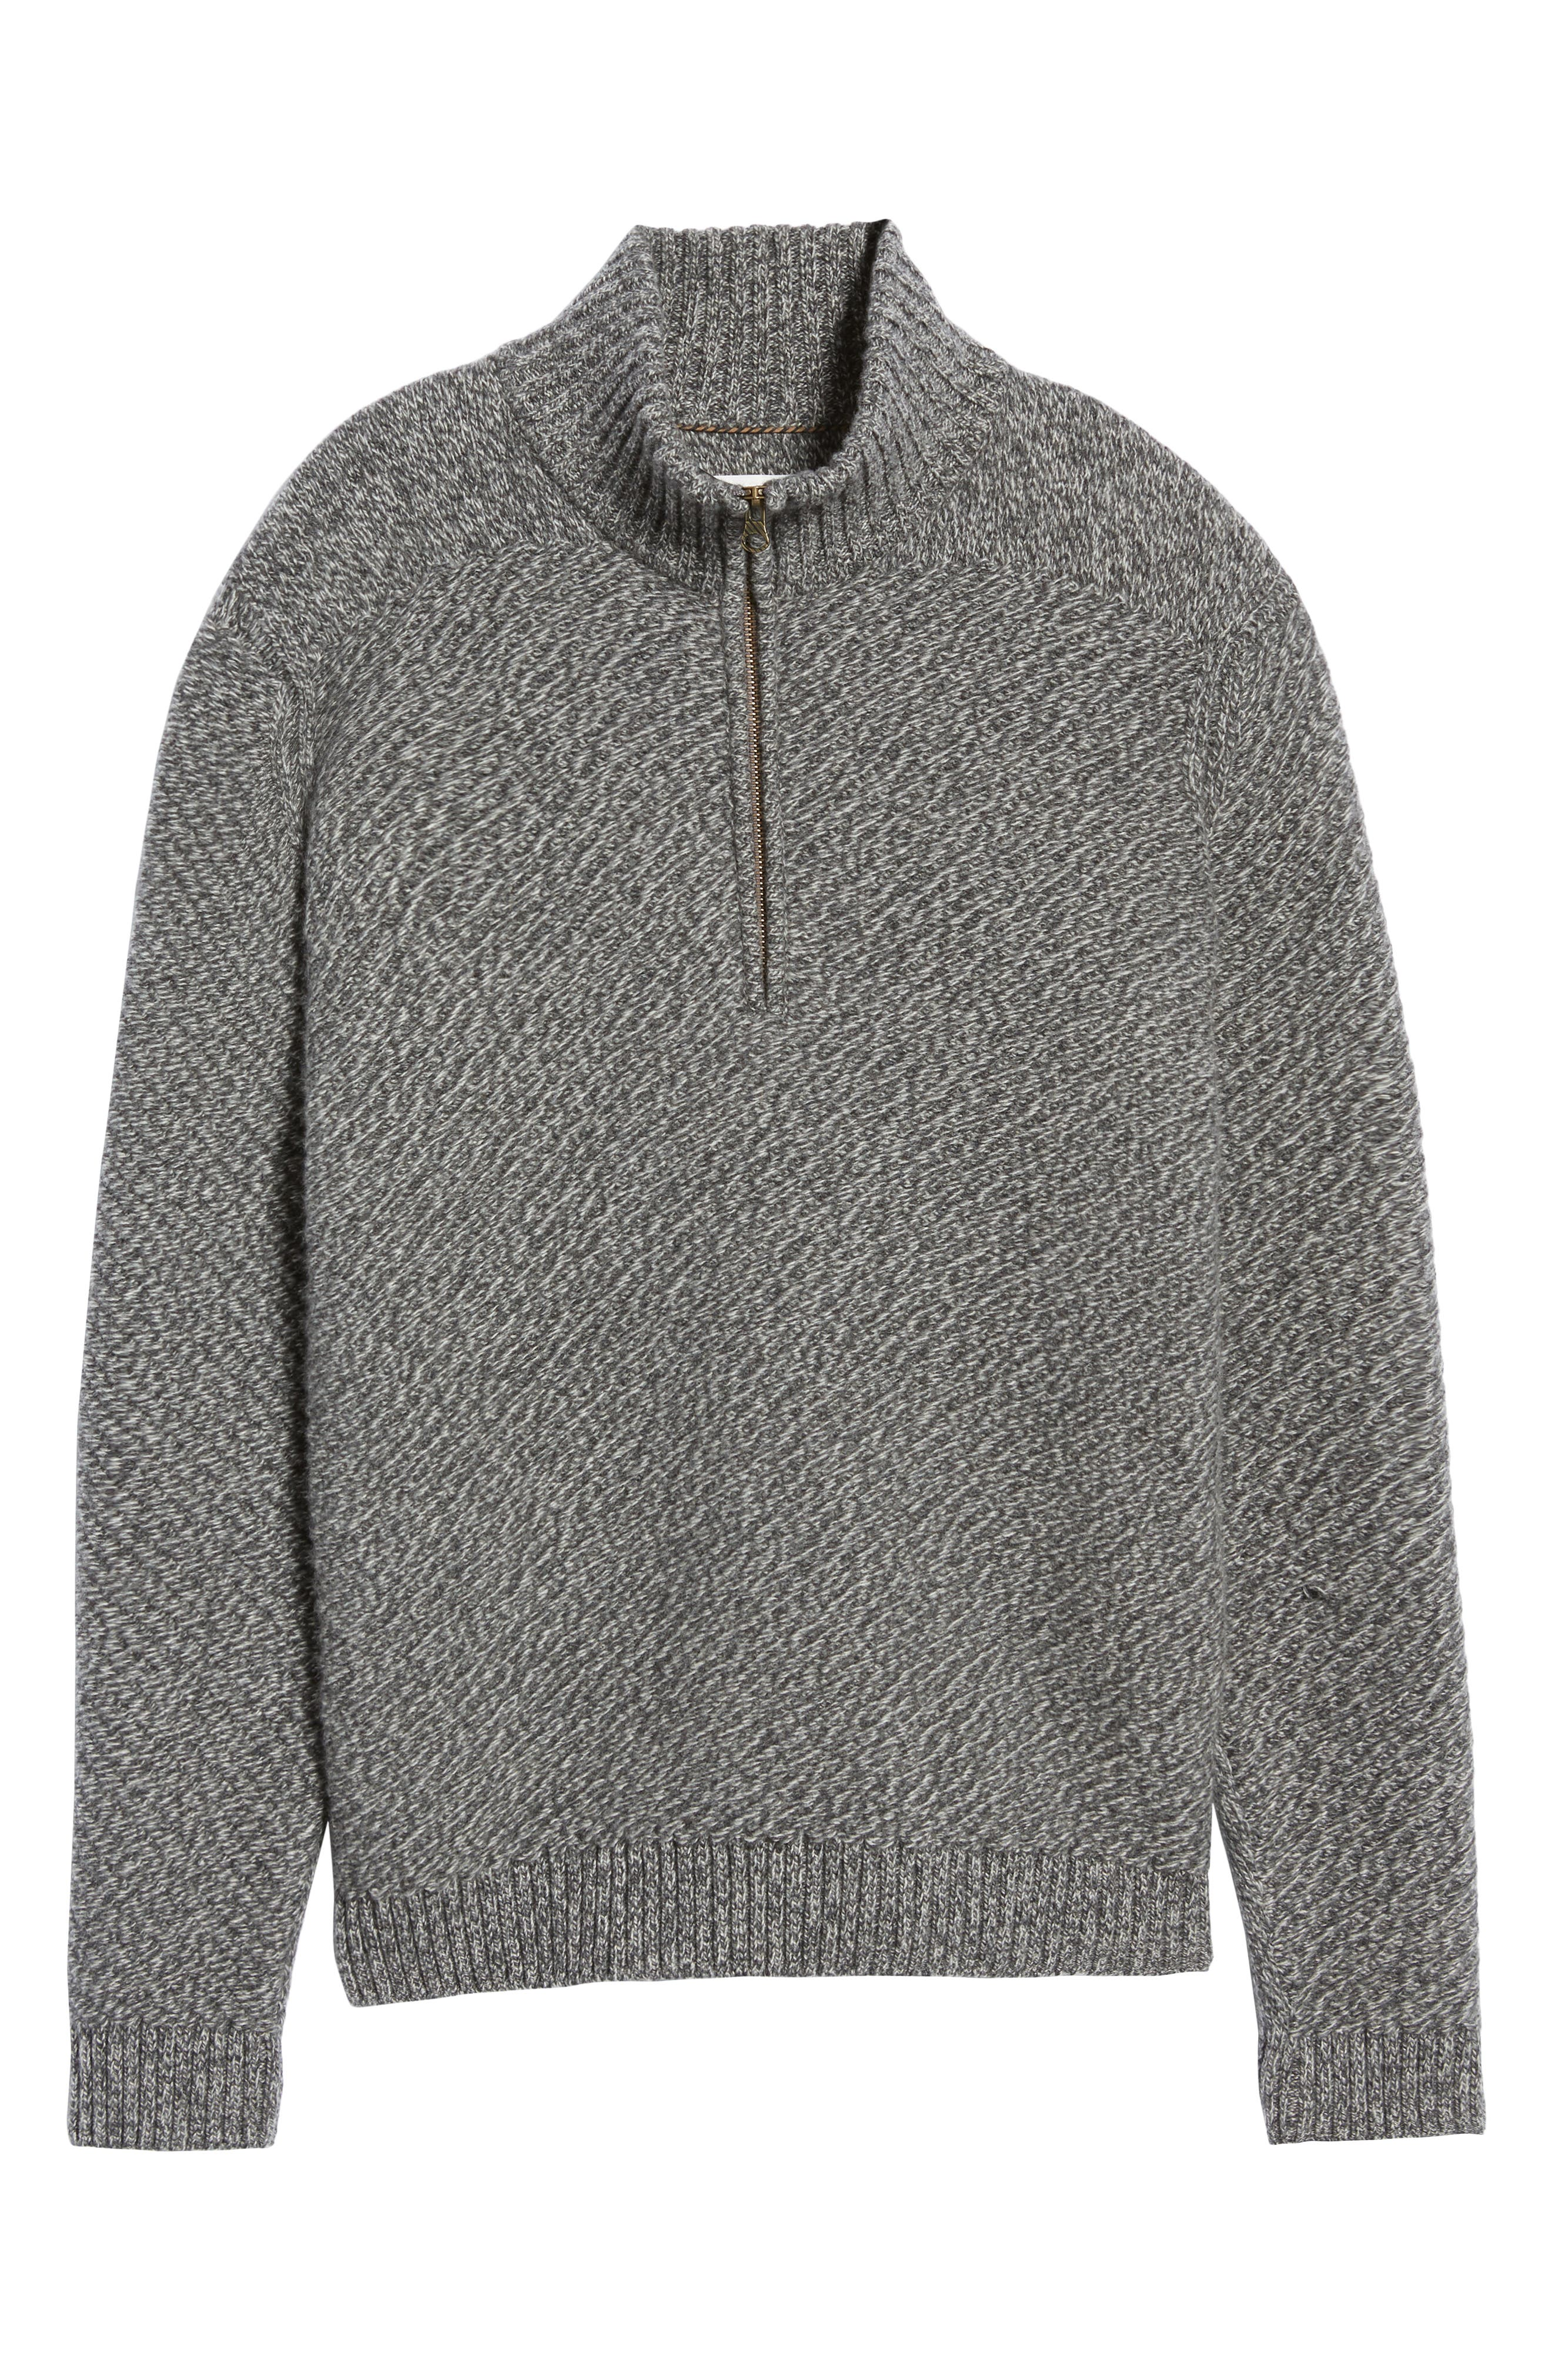 Cashmere Half Zip Sweater,                             Alternate thumbnail 6, color,                             CHARCOAL